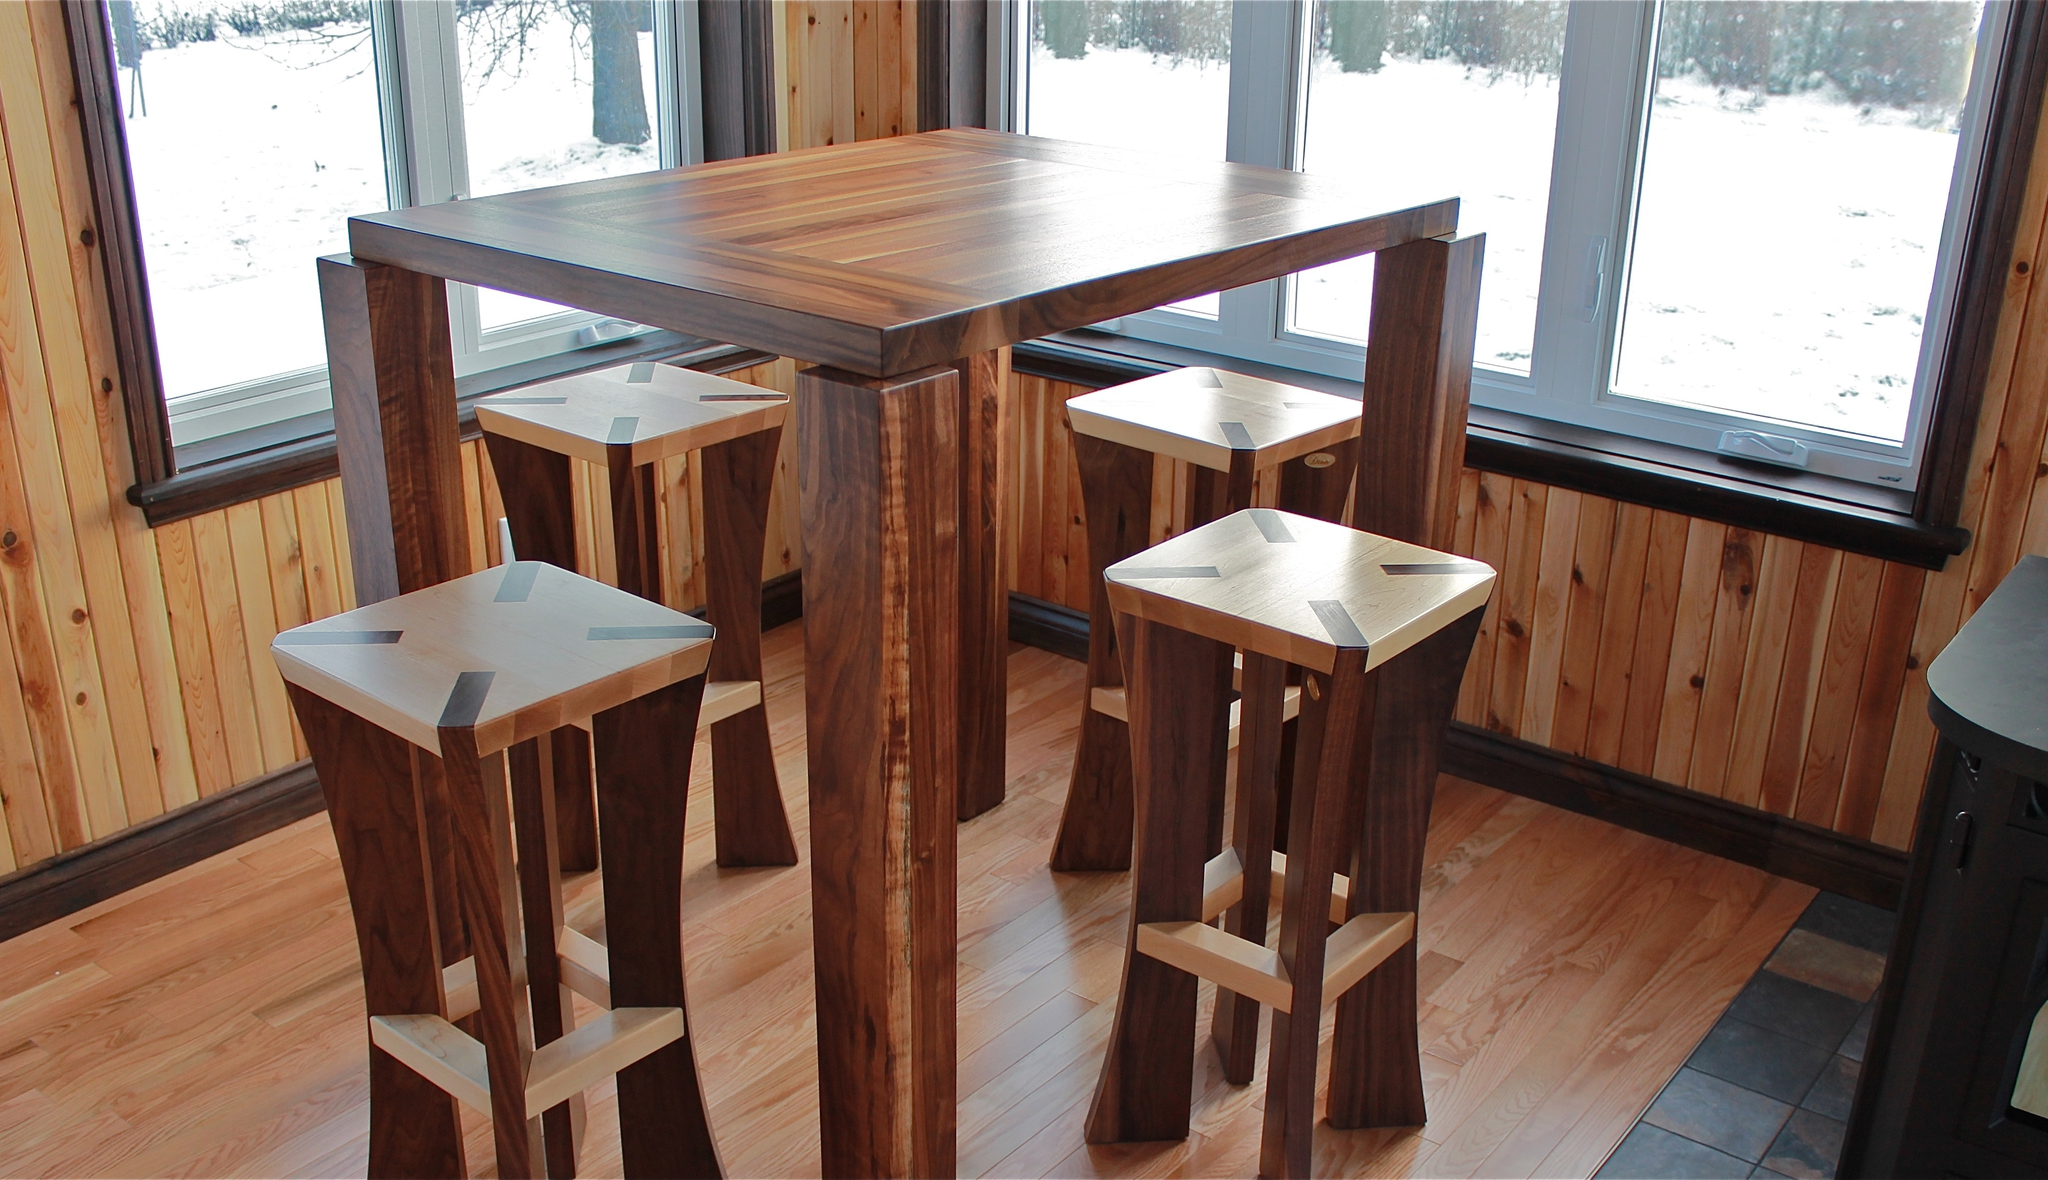 Ensemble table bistro en bois